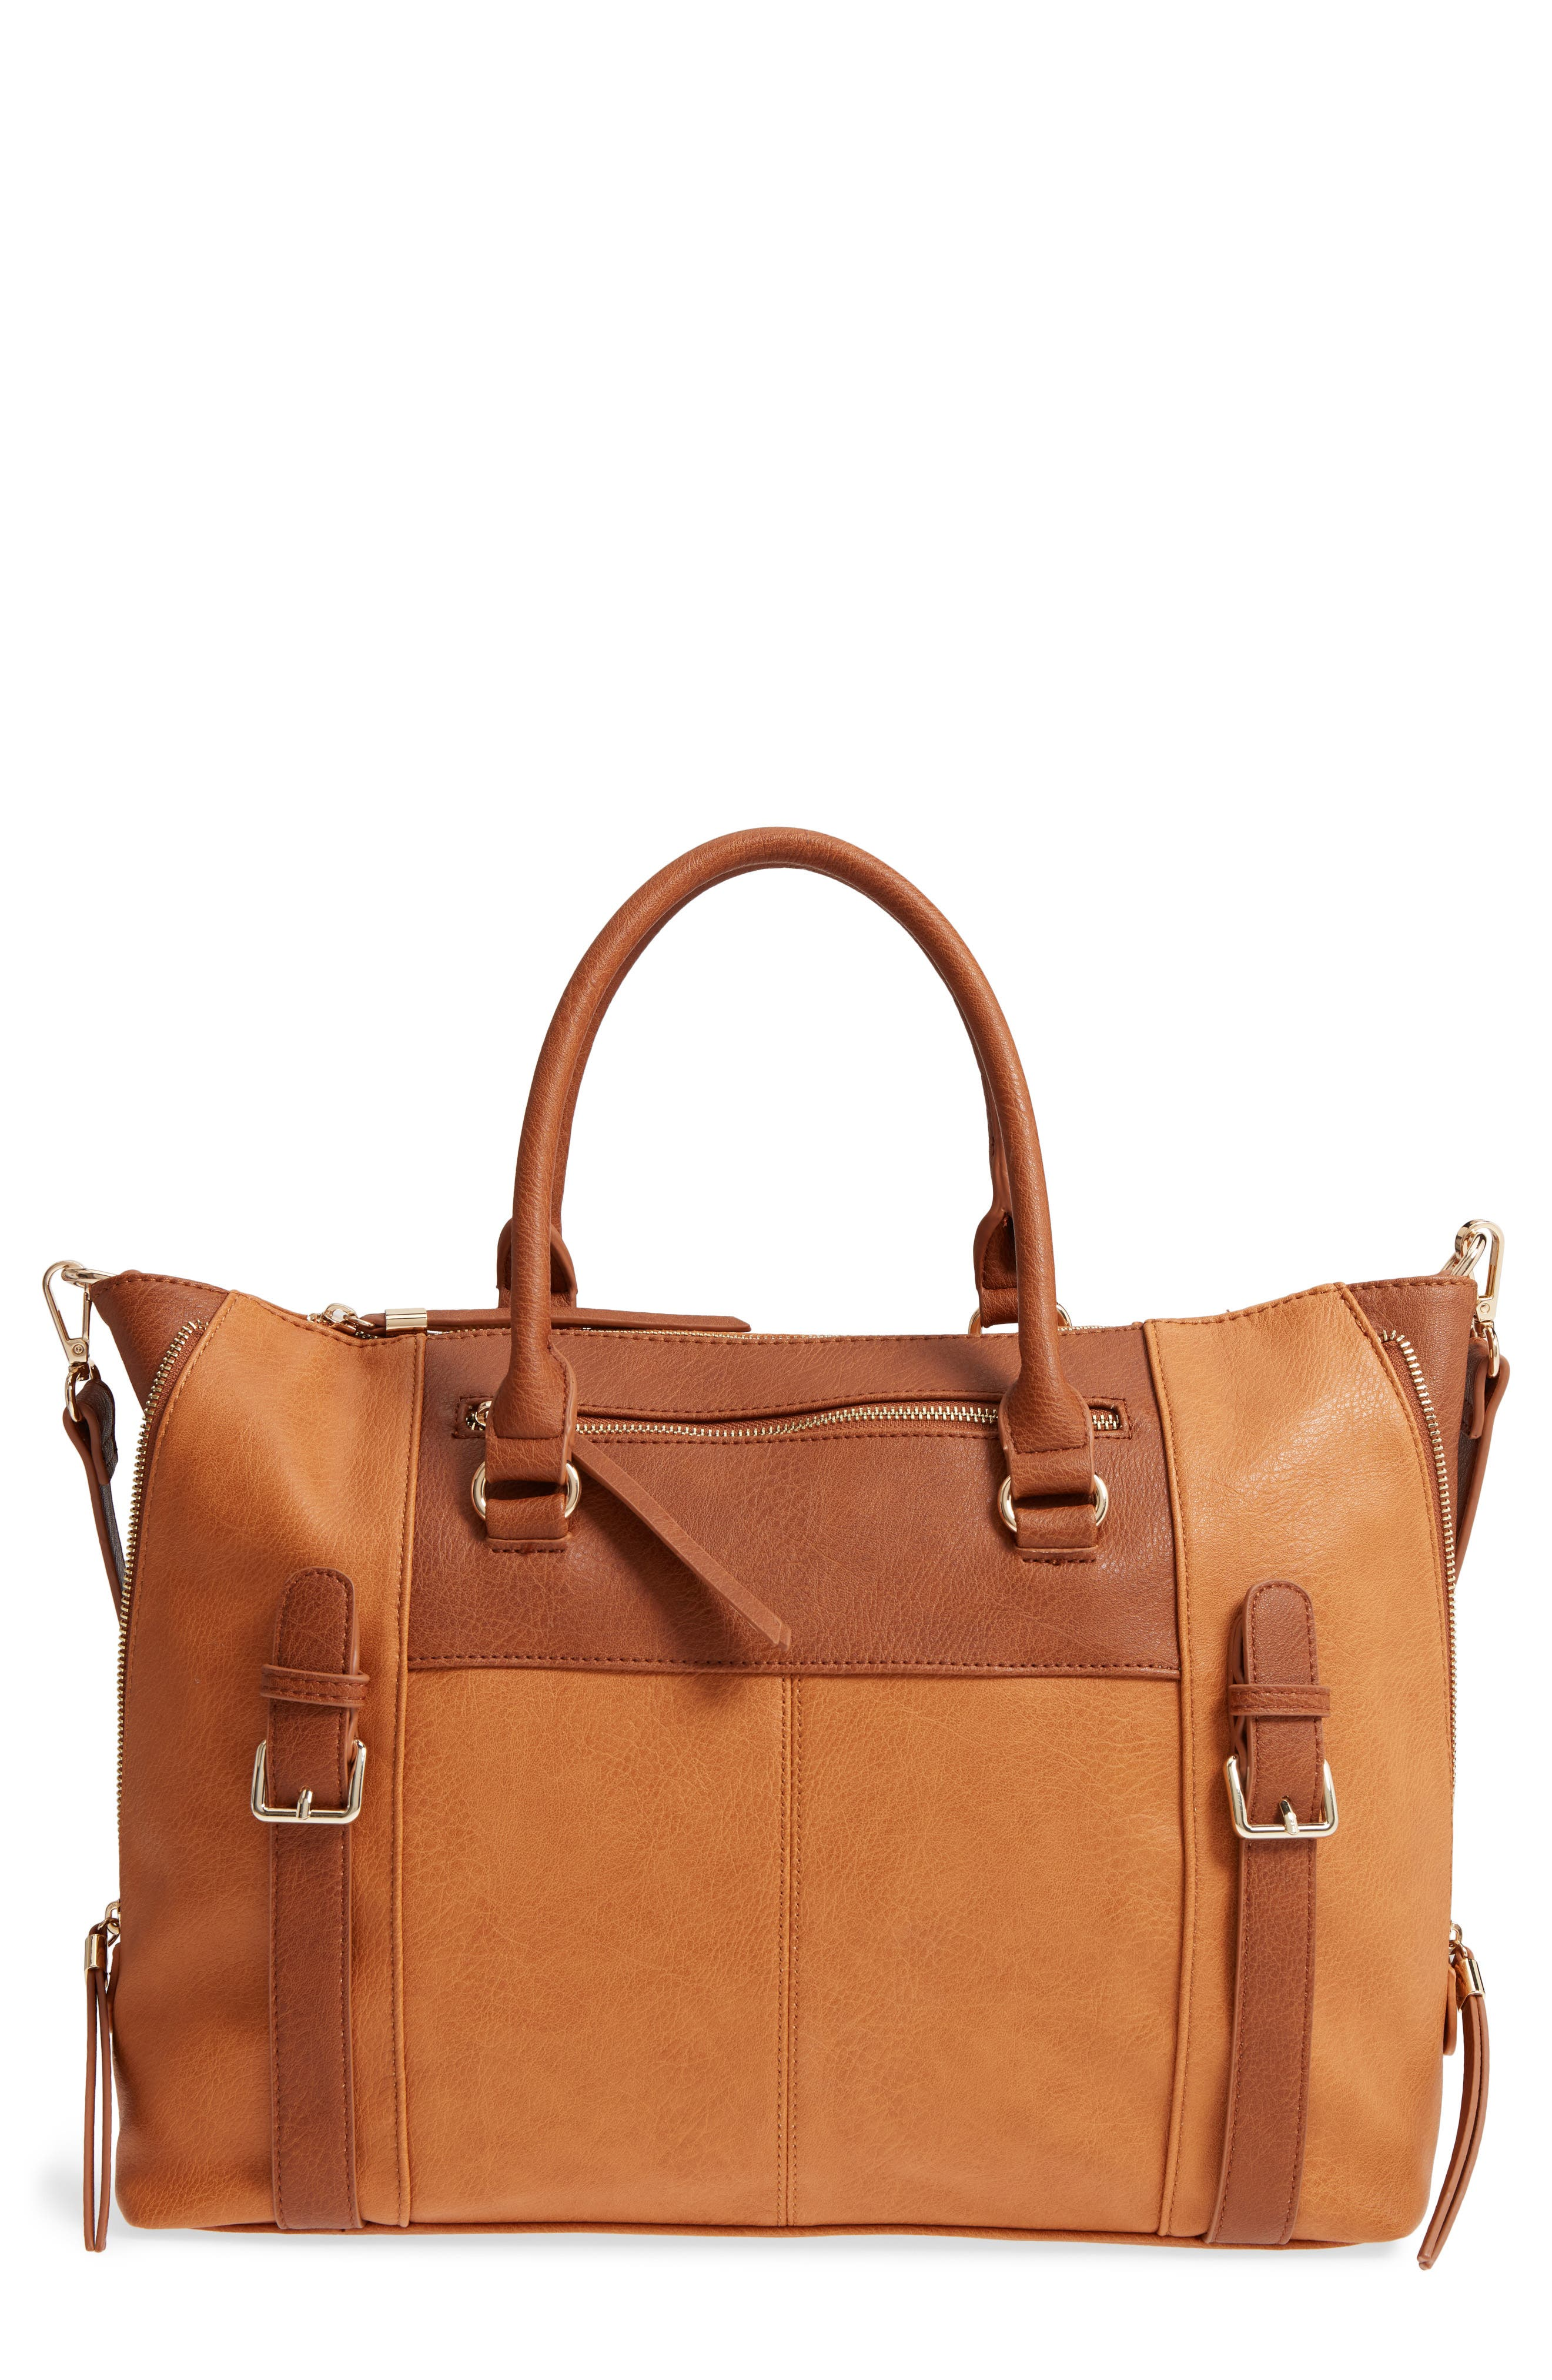 Buckle Faux Leather Tote,                             Main thumbnail 1, color,                             234